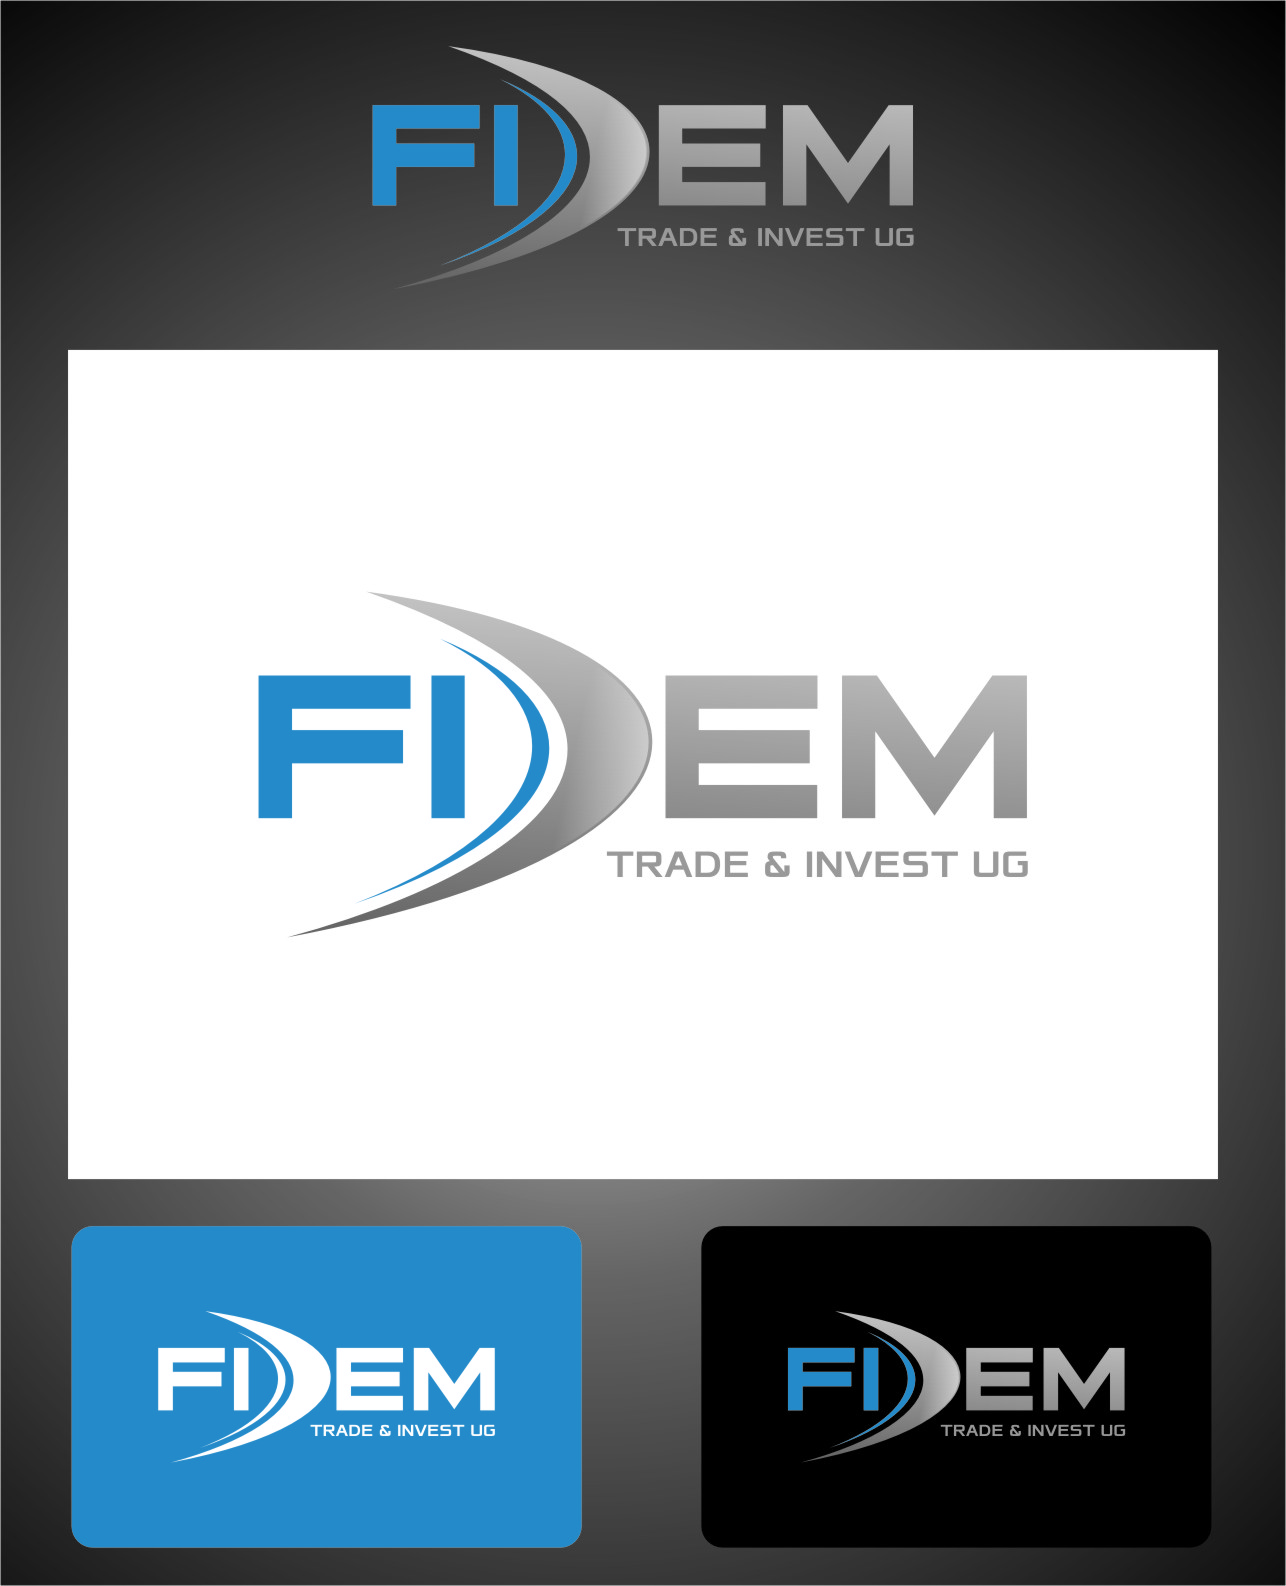 Logo Design by Ngepet_art - Entry No. 576 in the Logo Design Contest Professional Logo Design for FIDEM Trade & Invest UG.